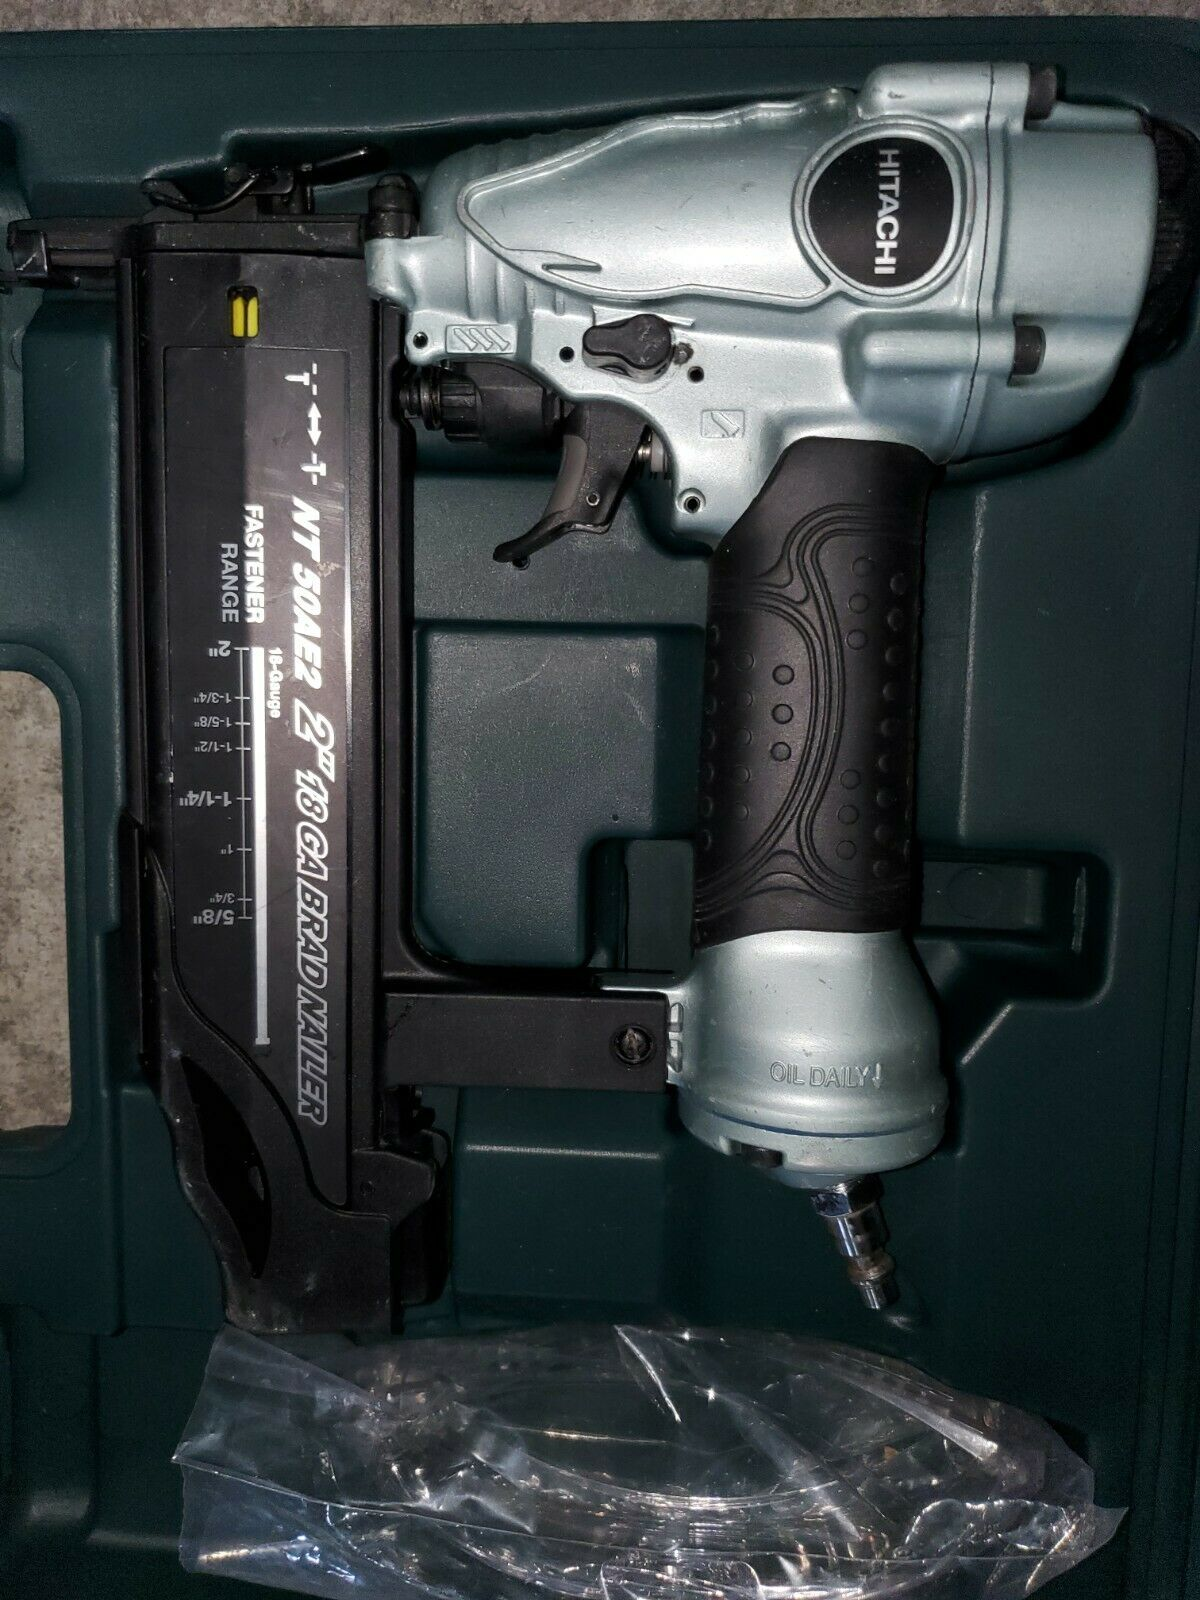 Hitachi NT50AE2 2 18-Gauge Brad Nailer kit nail gun nt50ae with 1 year warranty. Available Now for 49.99